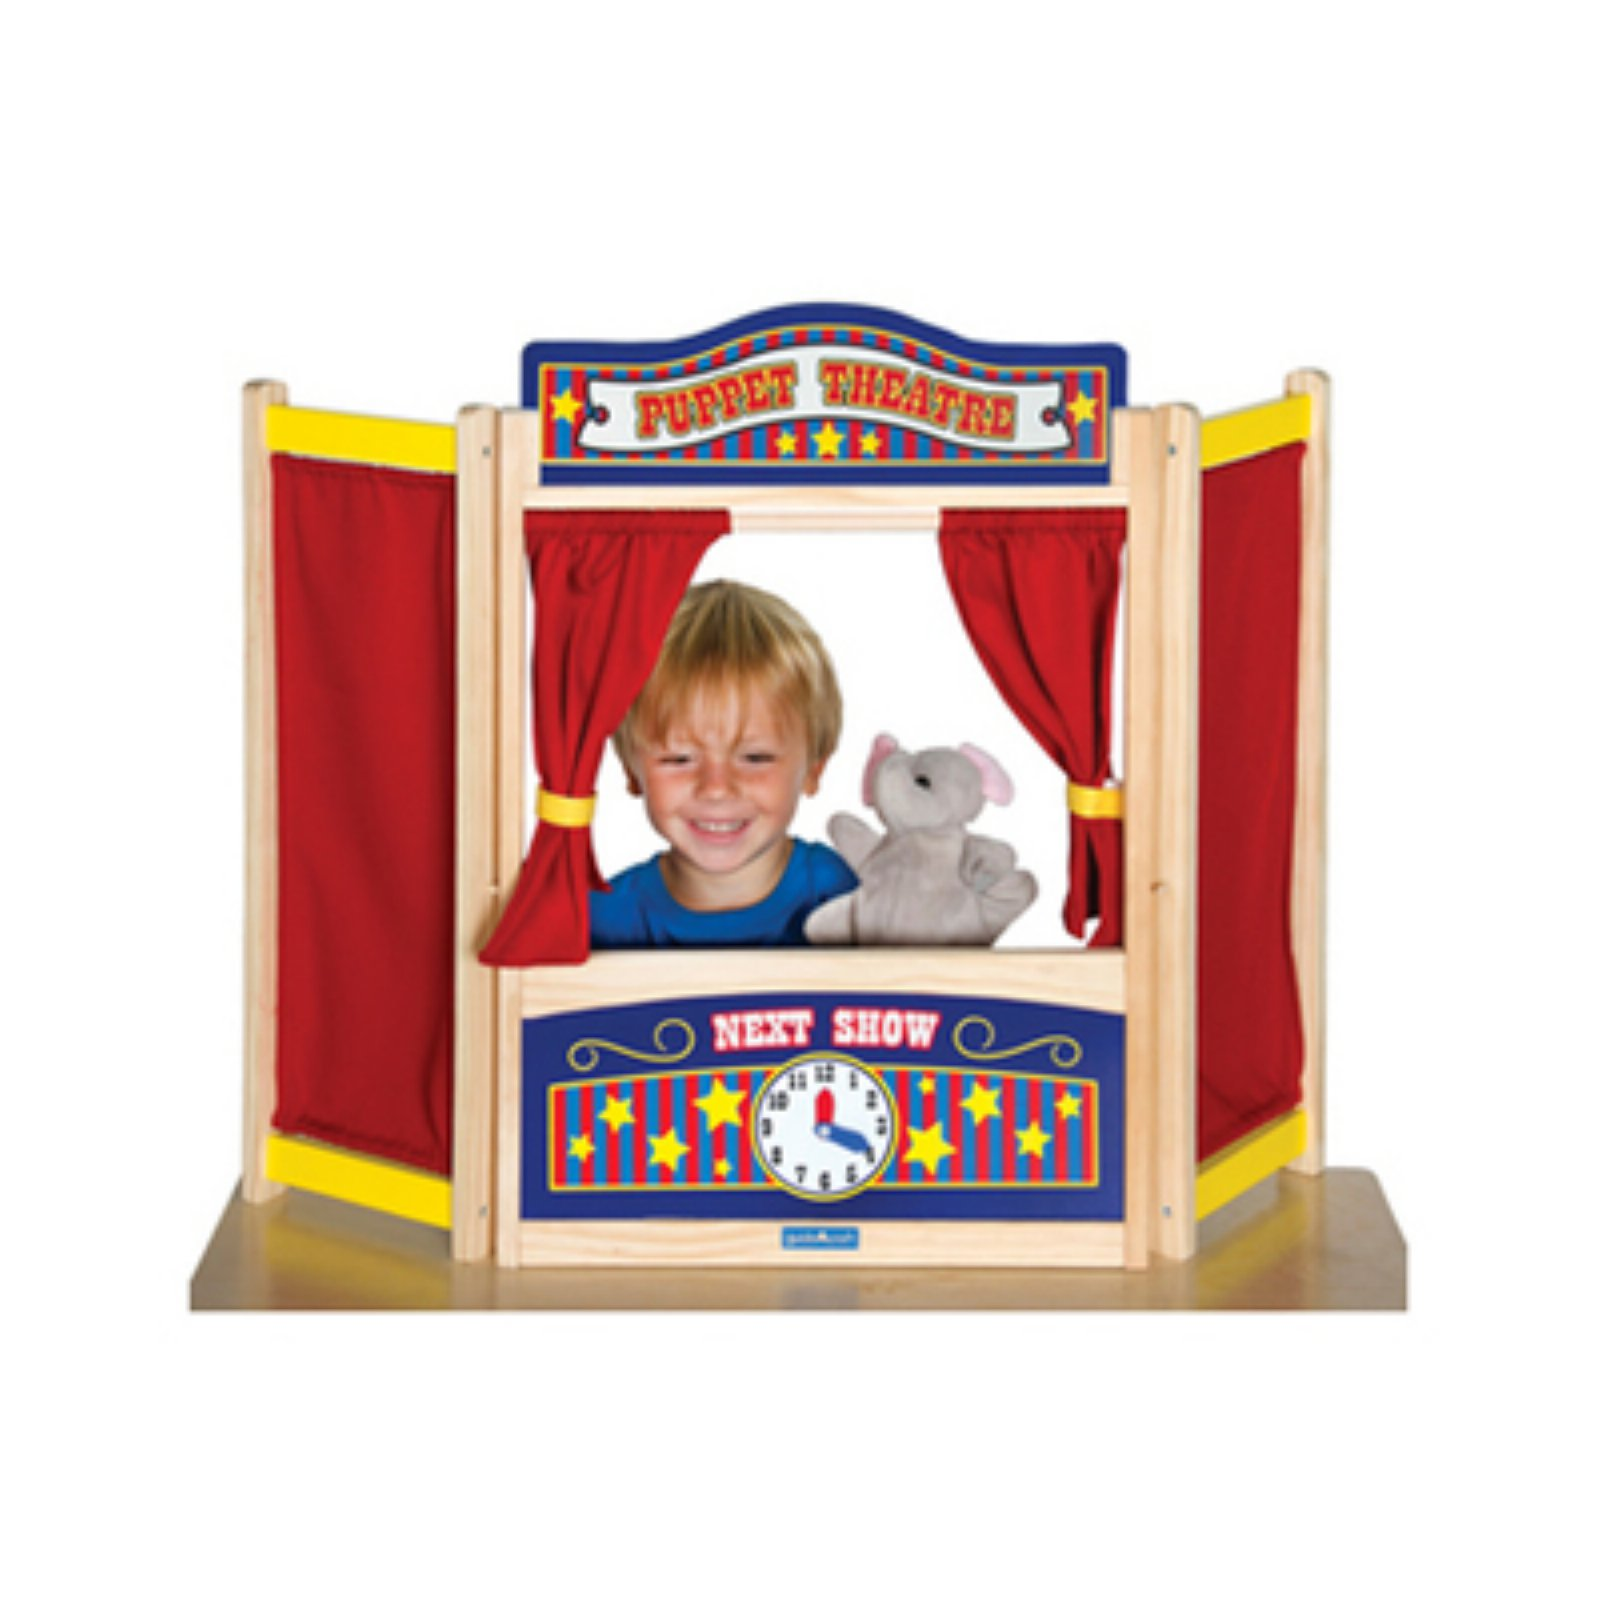 Guidecraft Pretend & Play Tabletop Theater